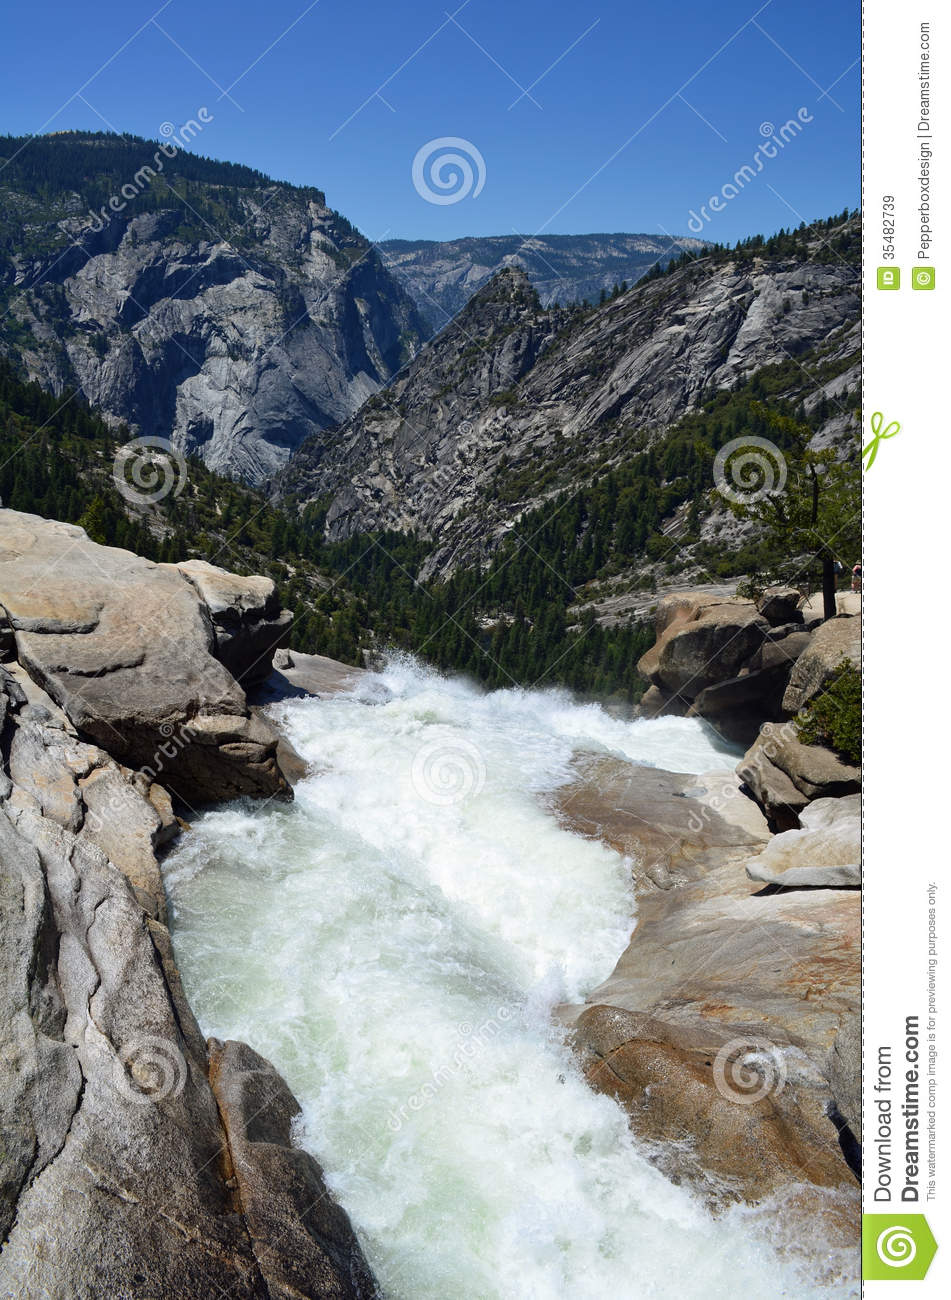 Nevada Fall clipart #14, Download drawings